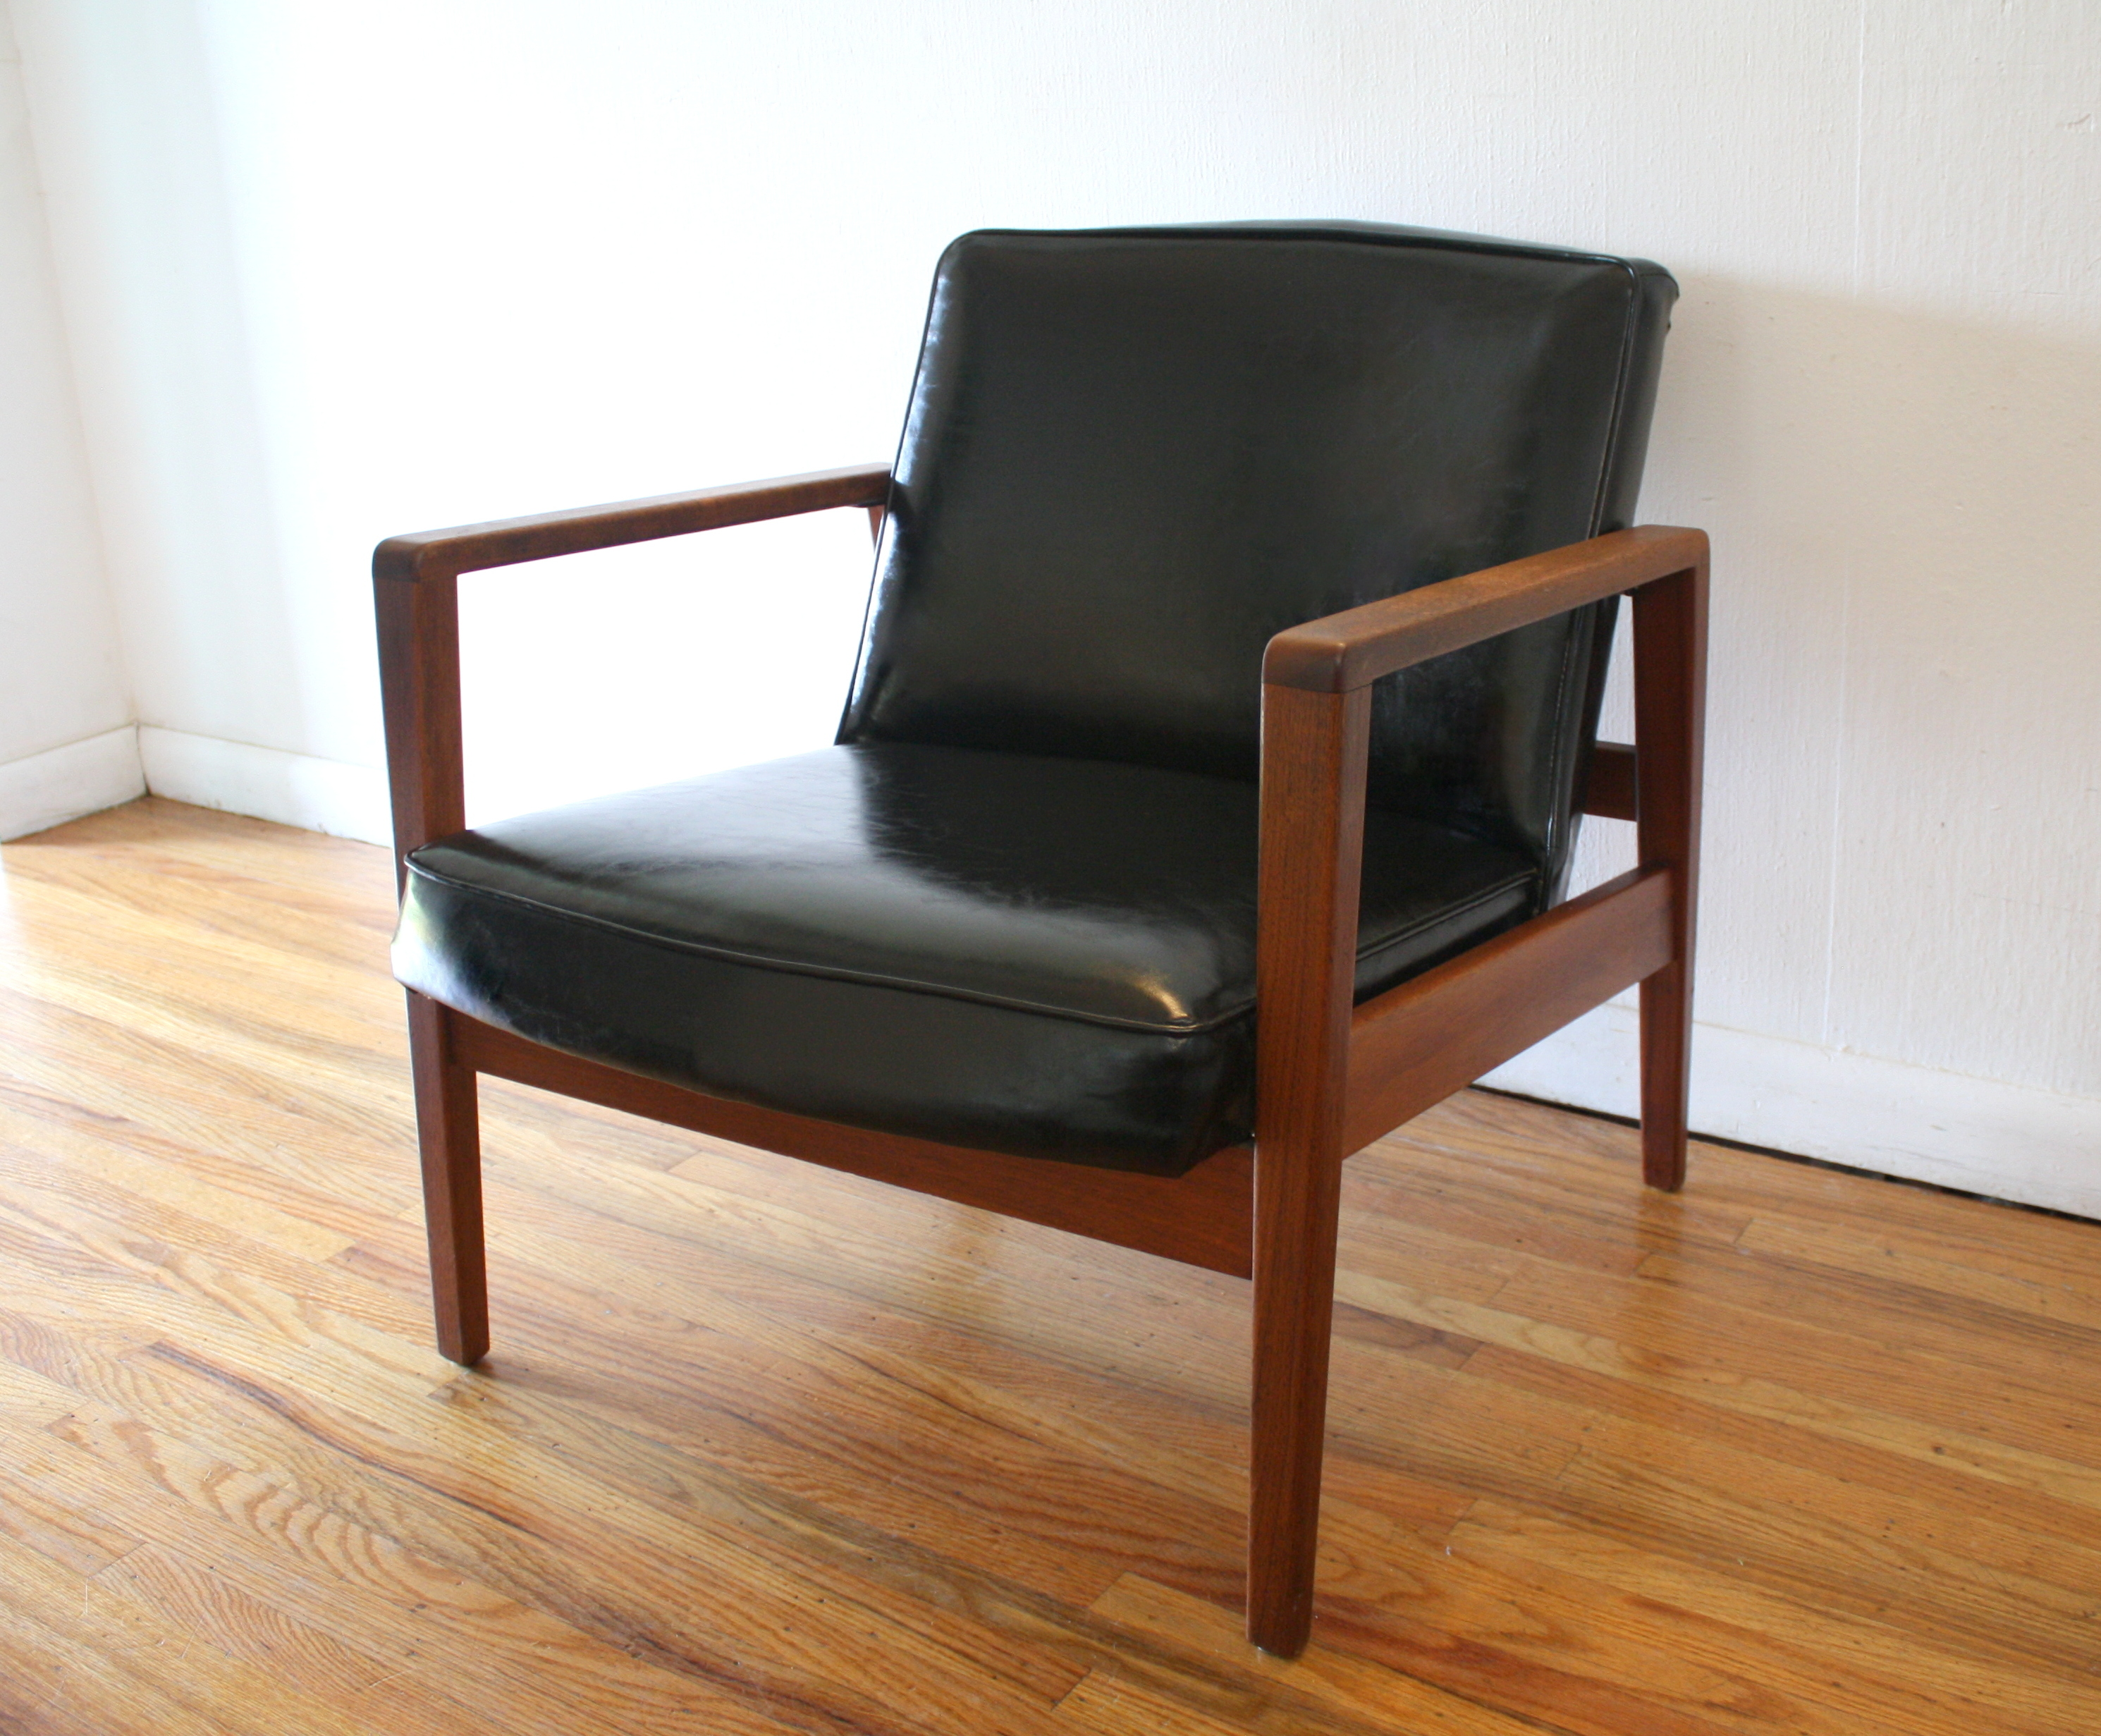 George Nelson Herman Miller chair 1.JPG